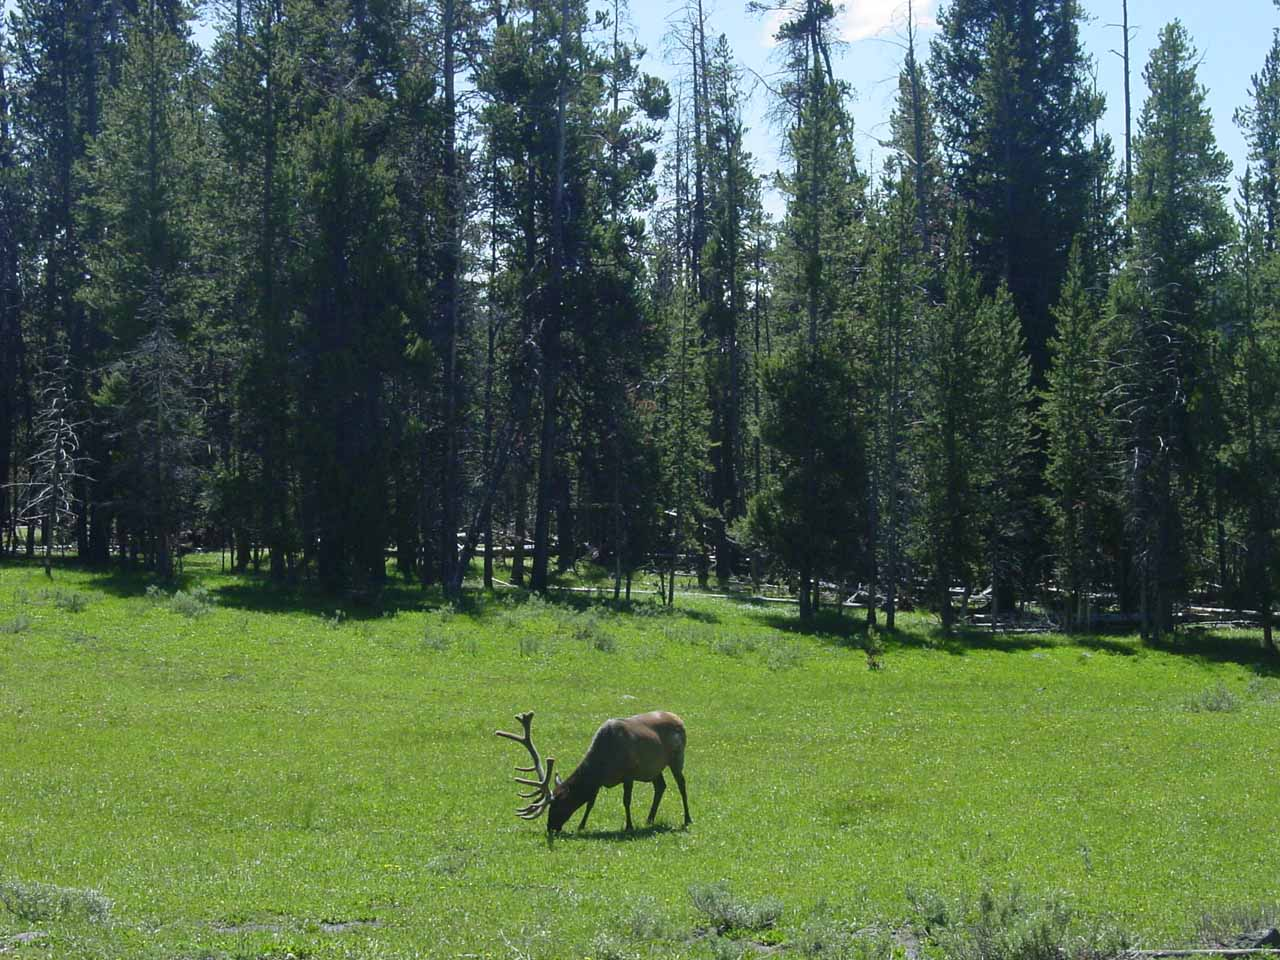 This grazing elk gained a lot of attention near Canyon Village